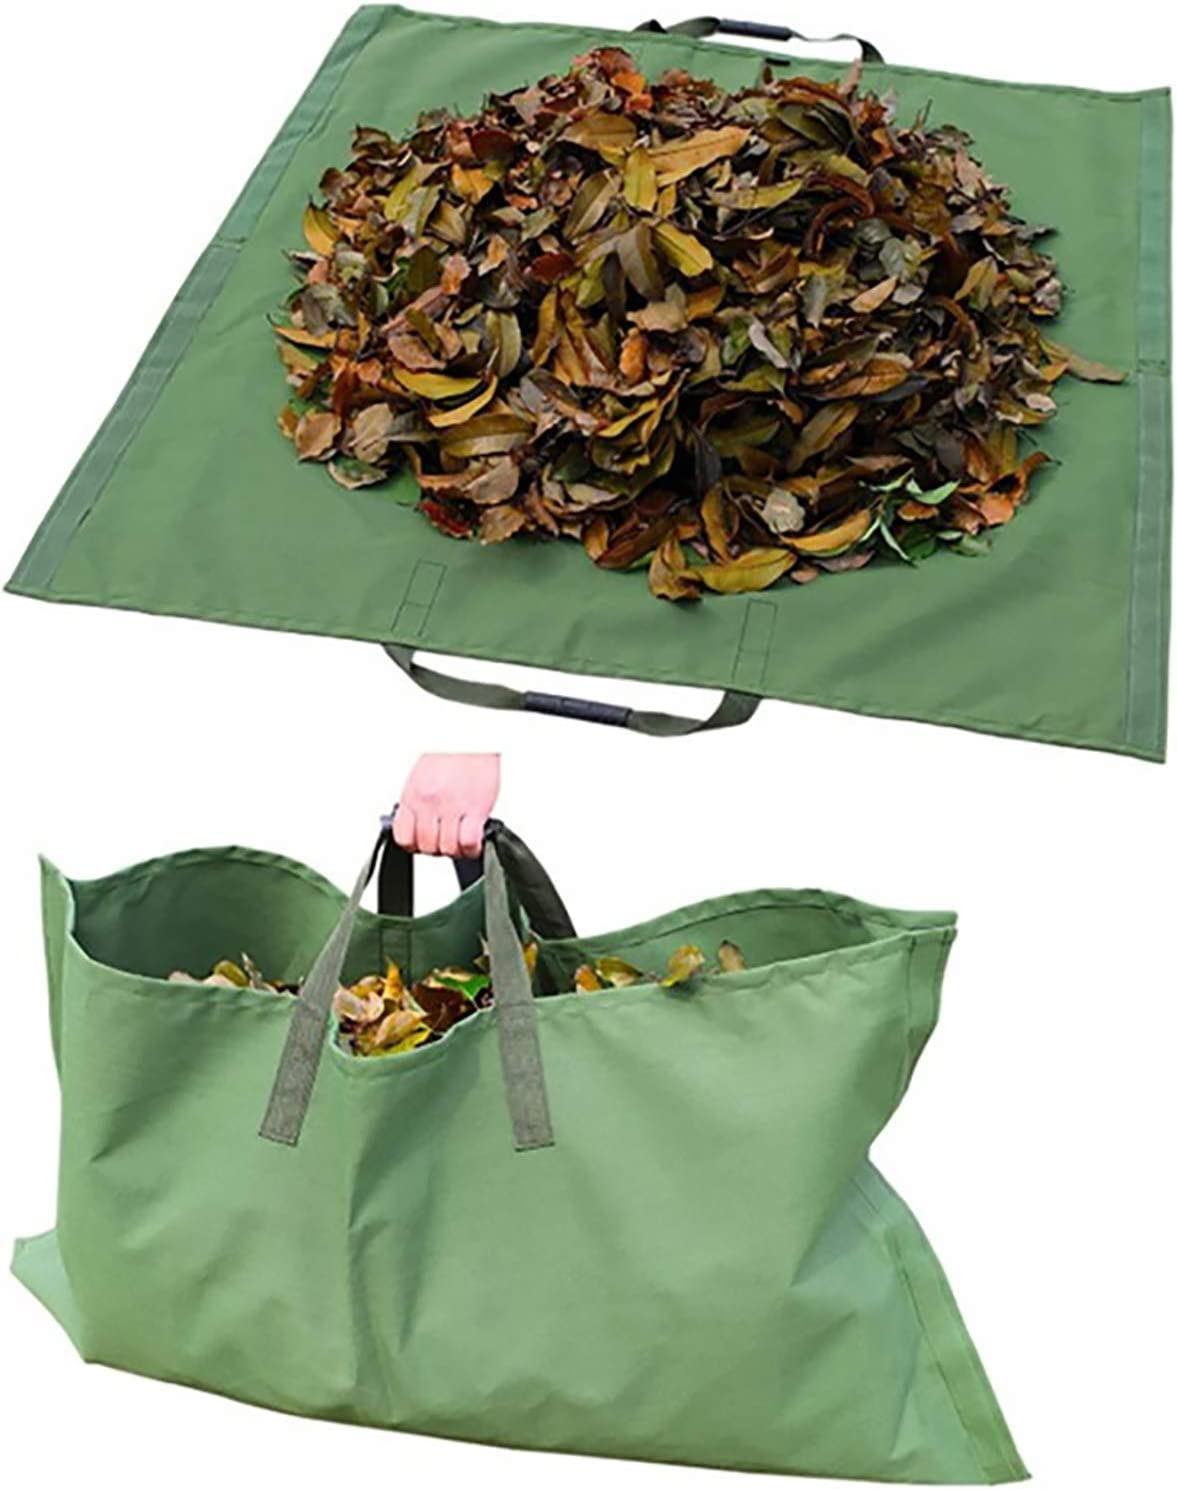 UNIE Yard Waste Bag for Collecting Leaves, Garden Leaf Collector Bag with Handles, Reusable Collapsible Leaf Container for Clean up